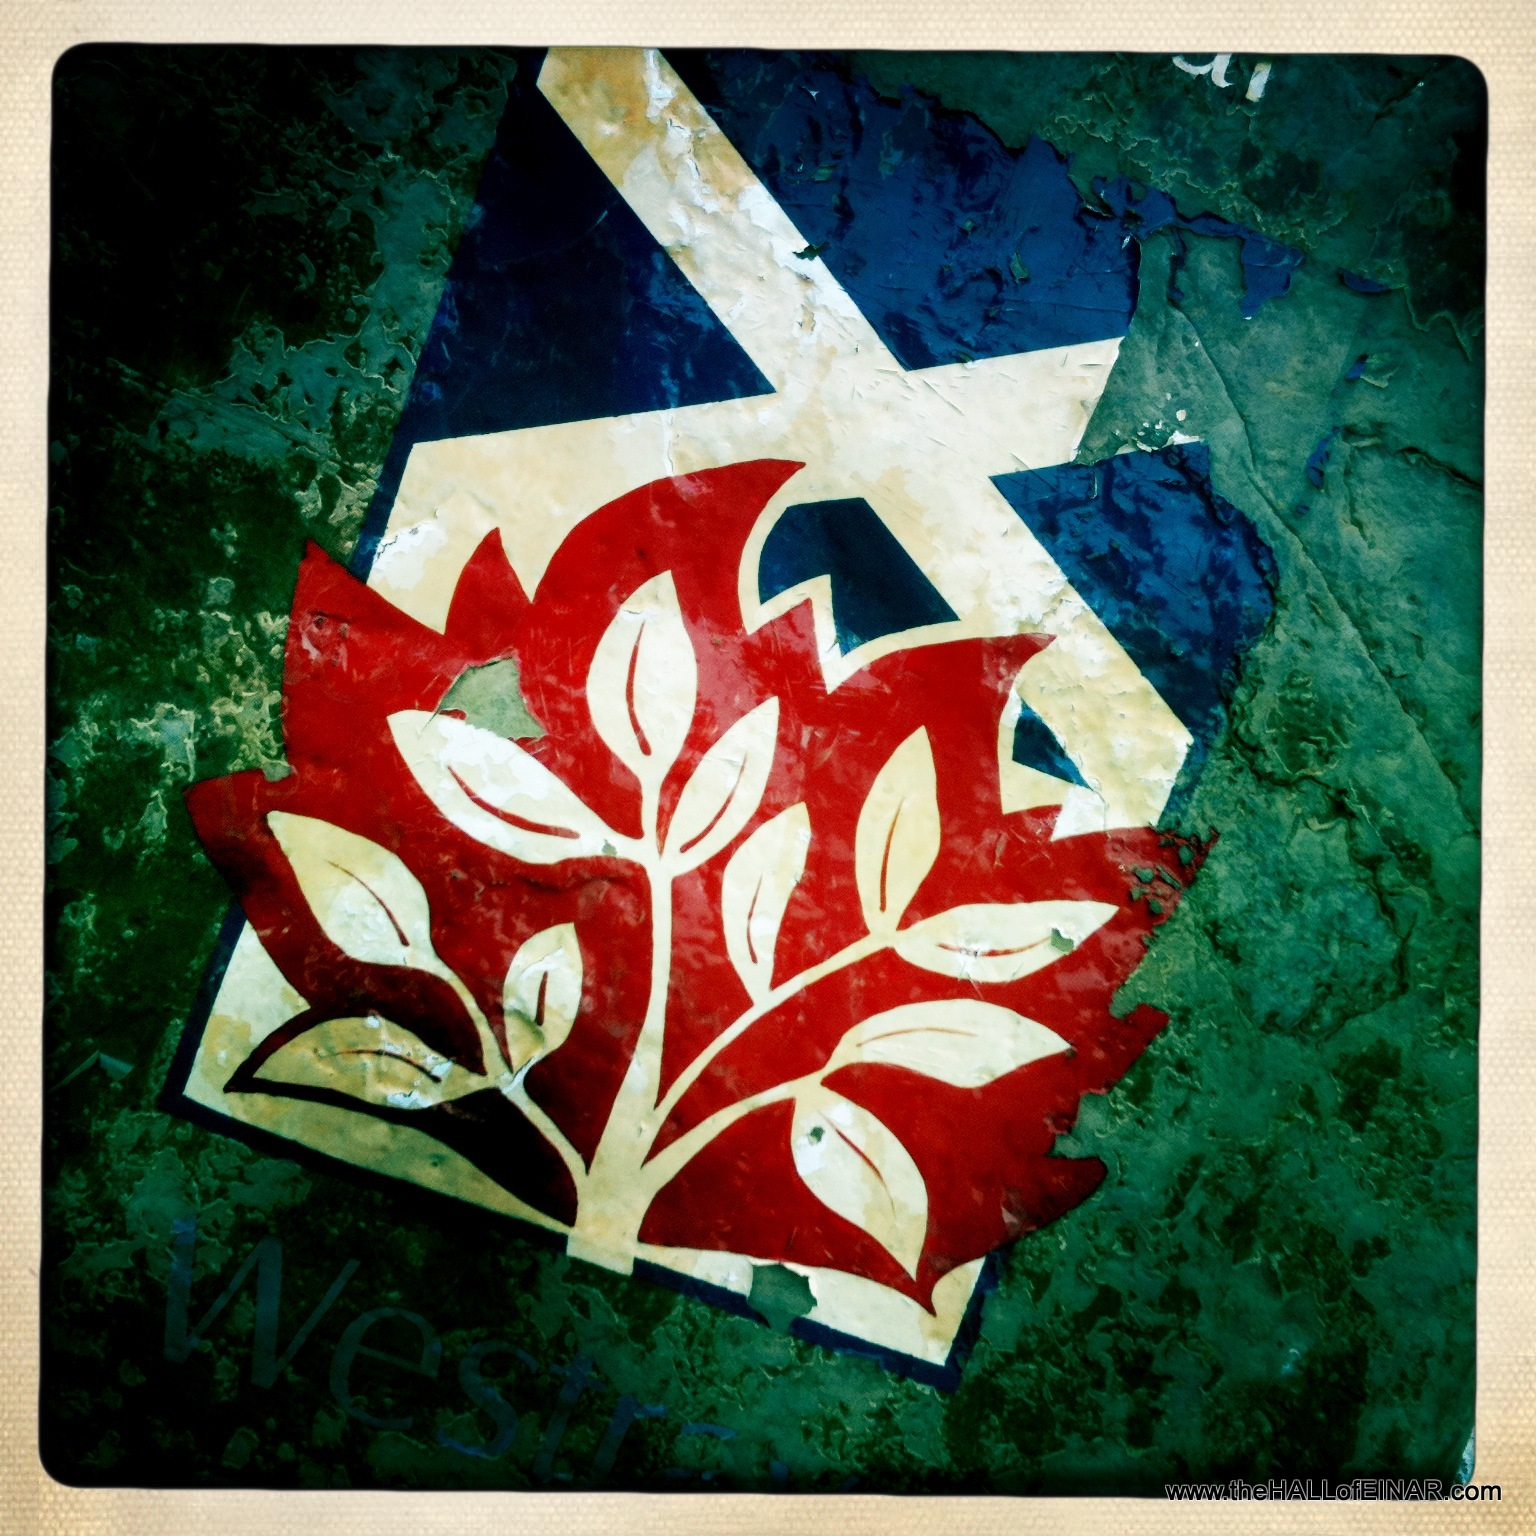 The Saltire and the burning bush